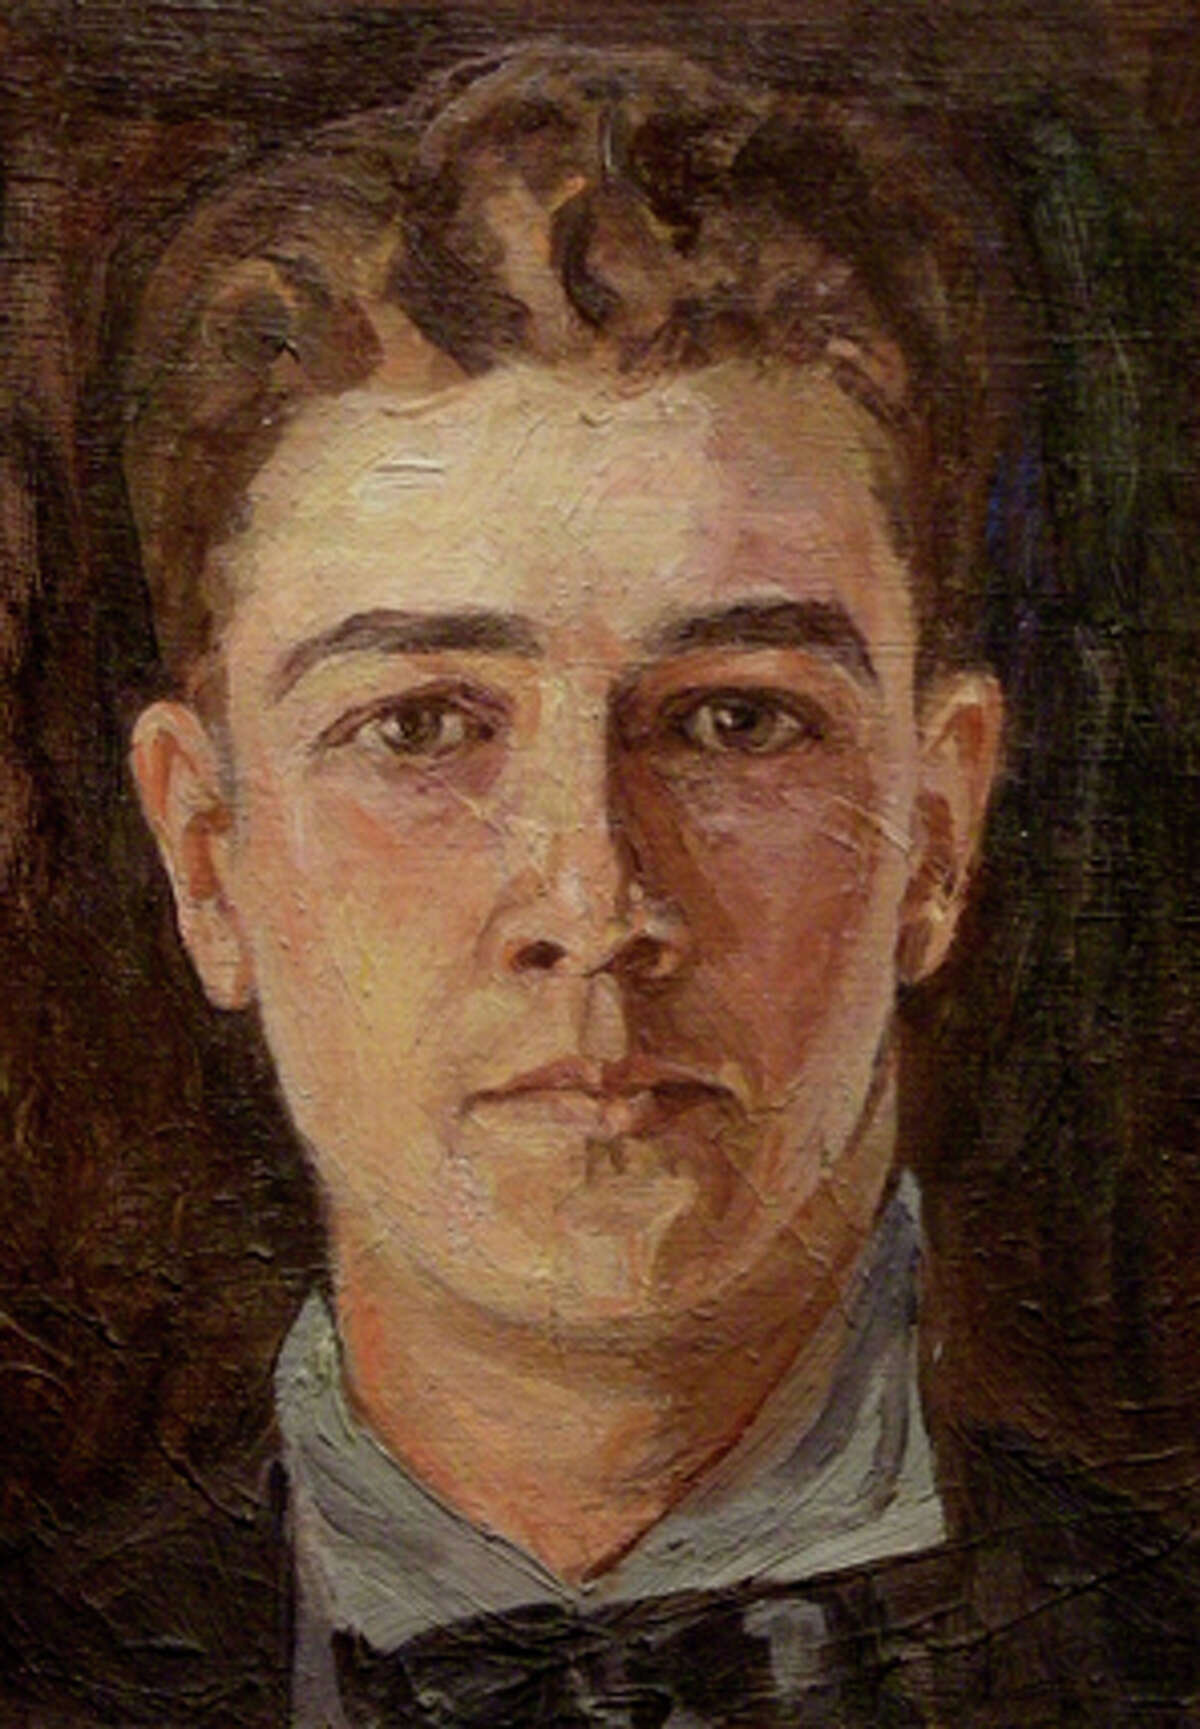 Pioneering Texas painter Harold Bugbee painted this self-portrait when he was a young man.